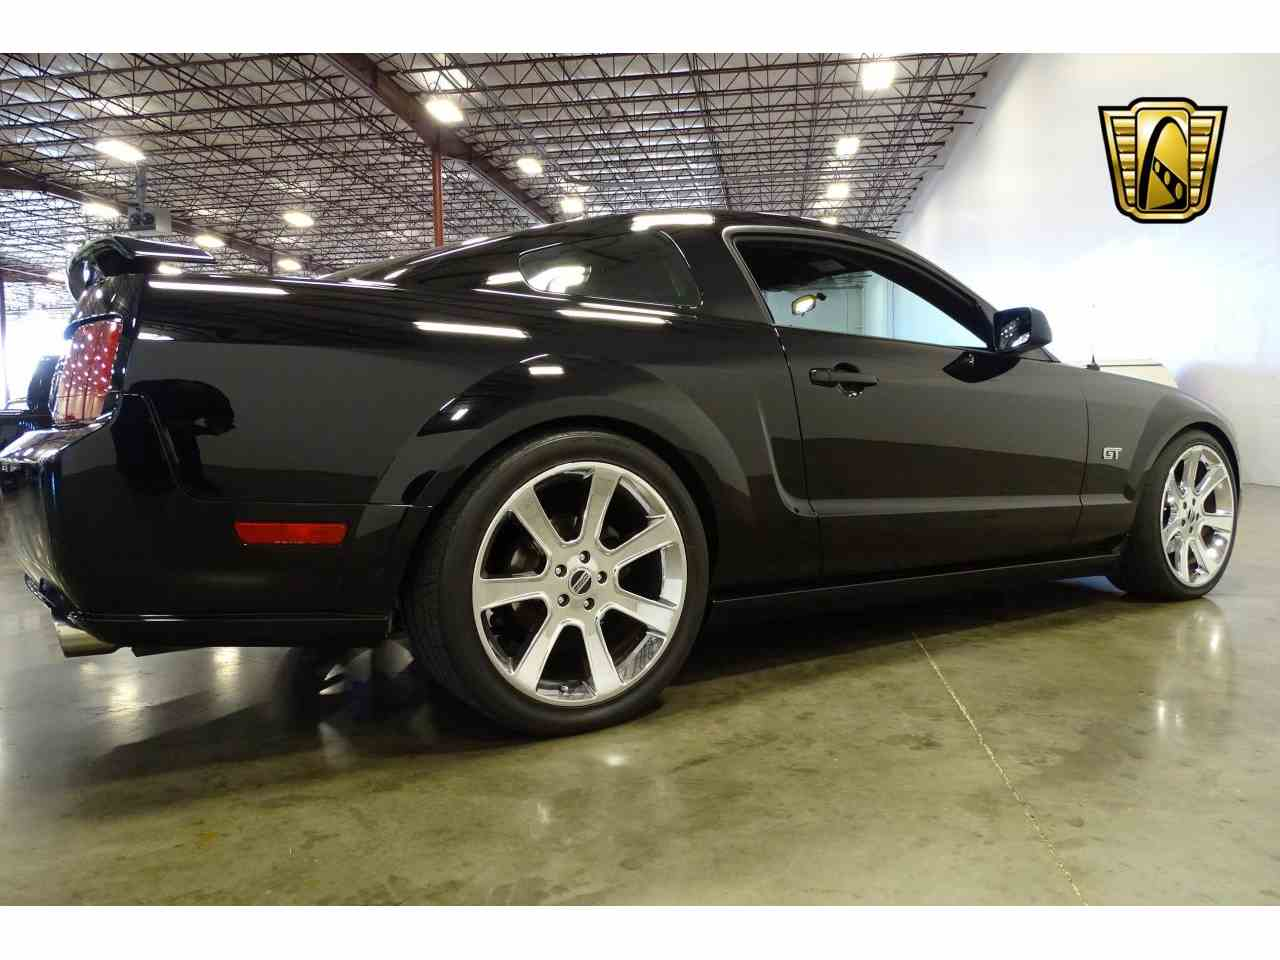 Large Picture of '06 Ford Mustang located in La Vergne Tennessee - $15,595.00 Offered by Gateway Classic Cars - Nashville - MFDI